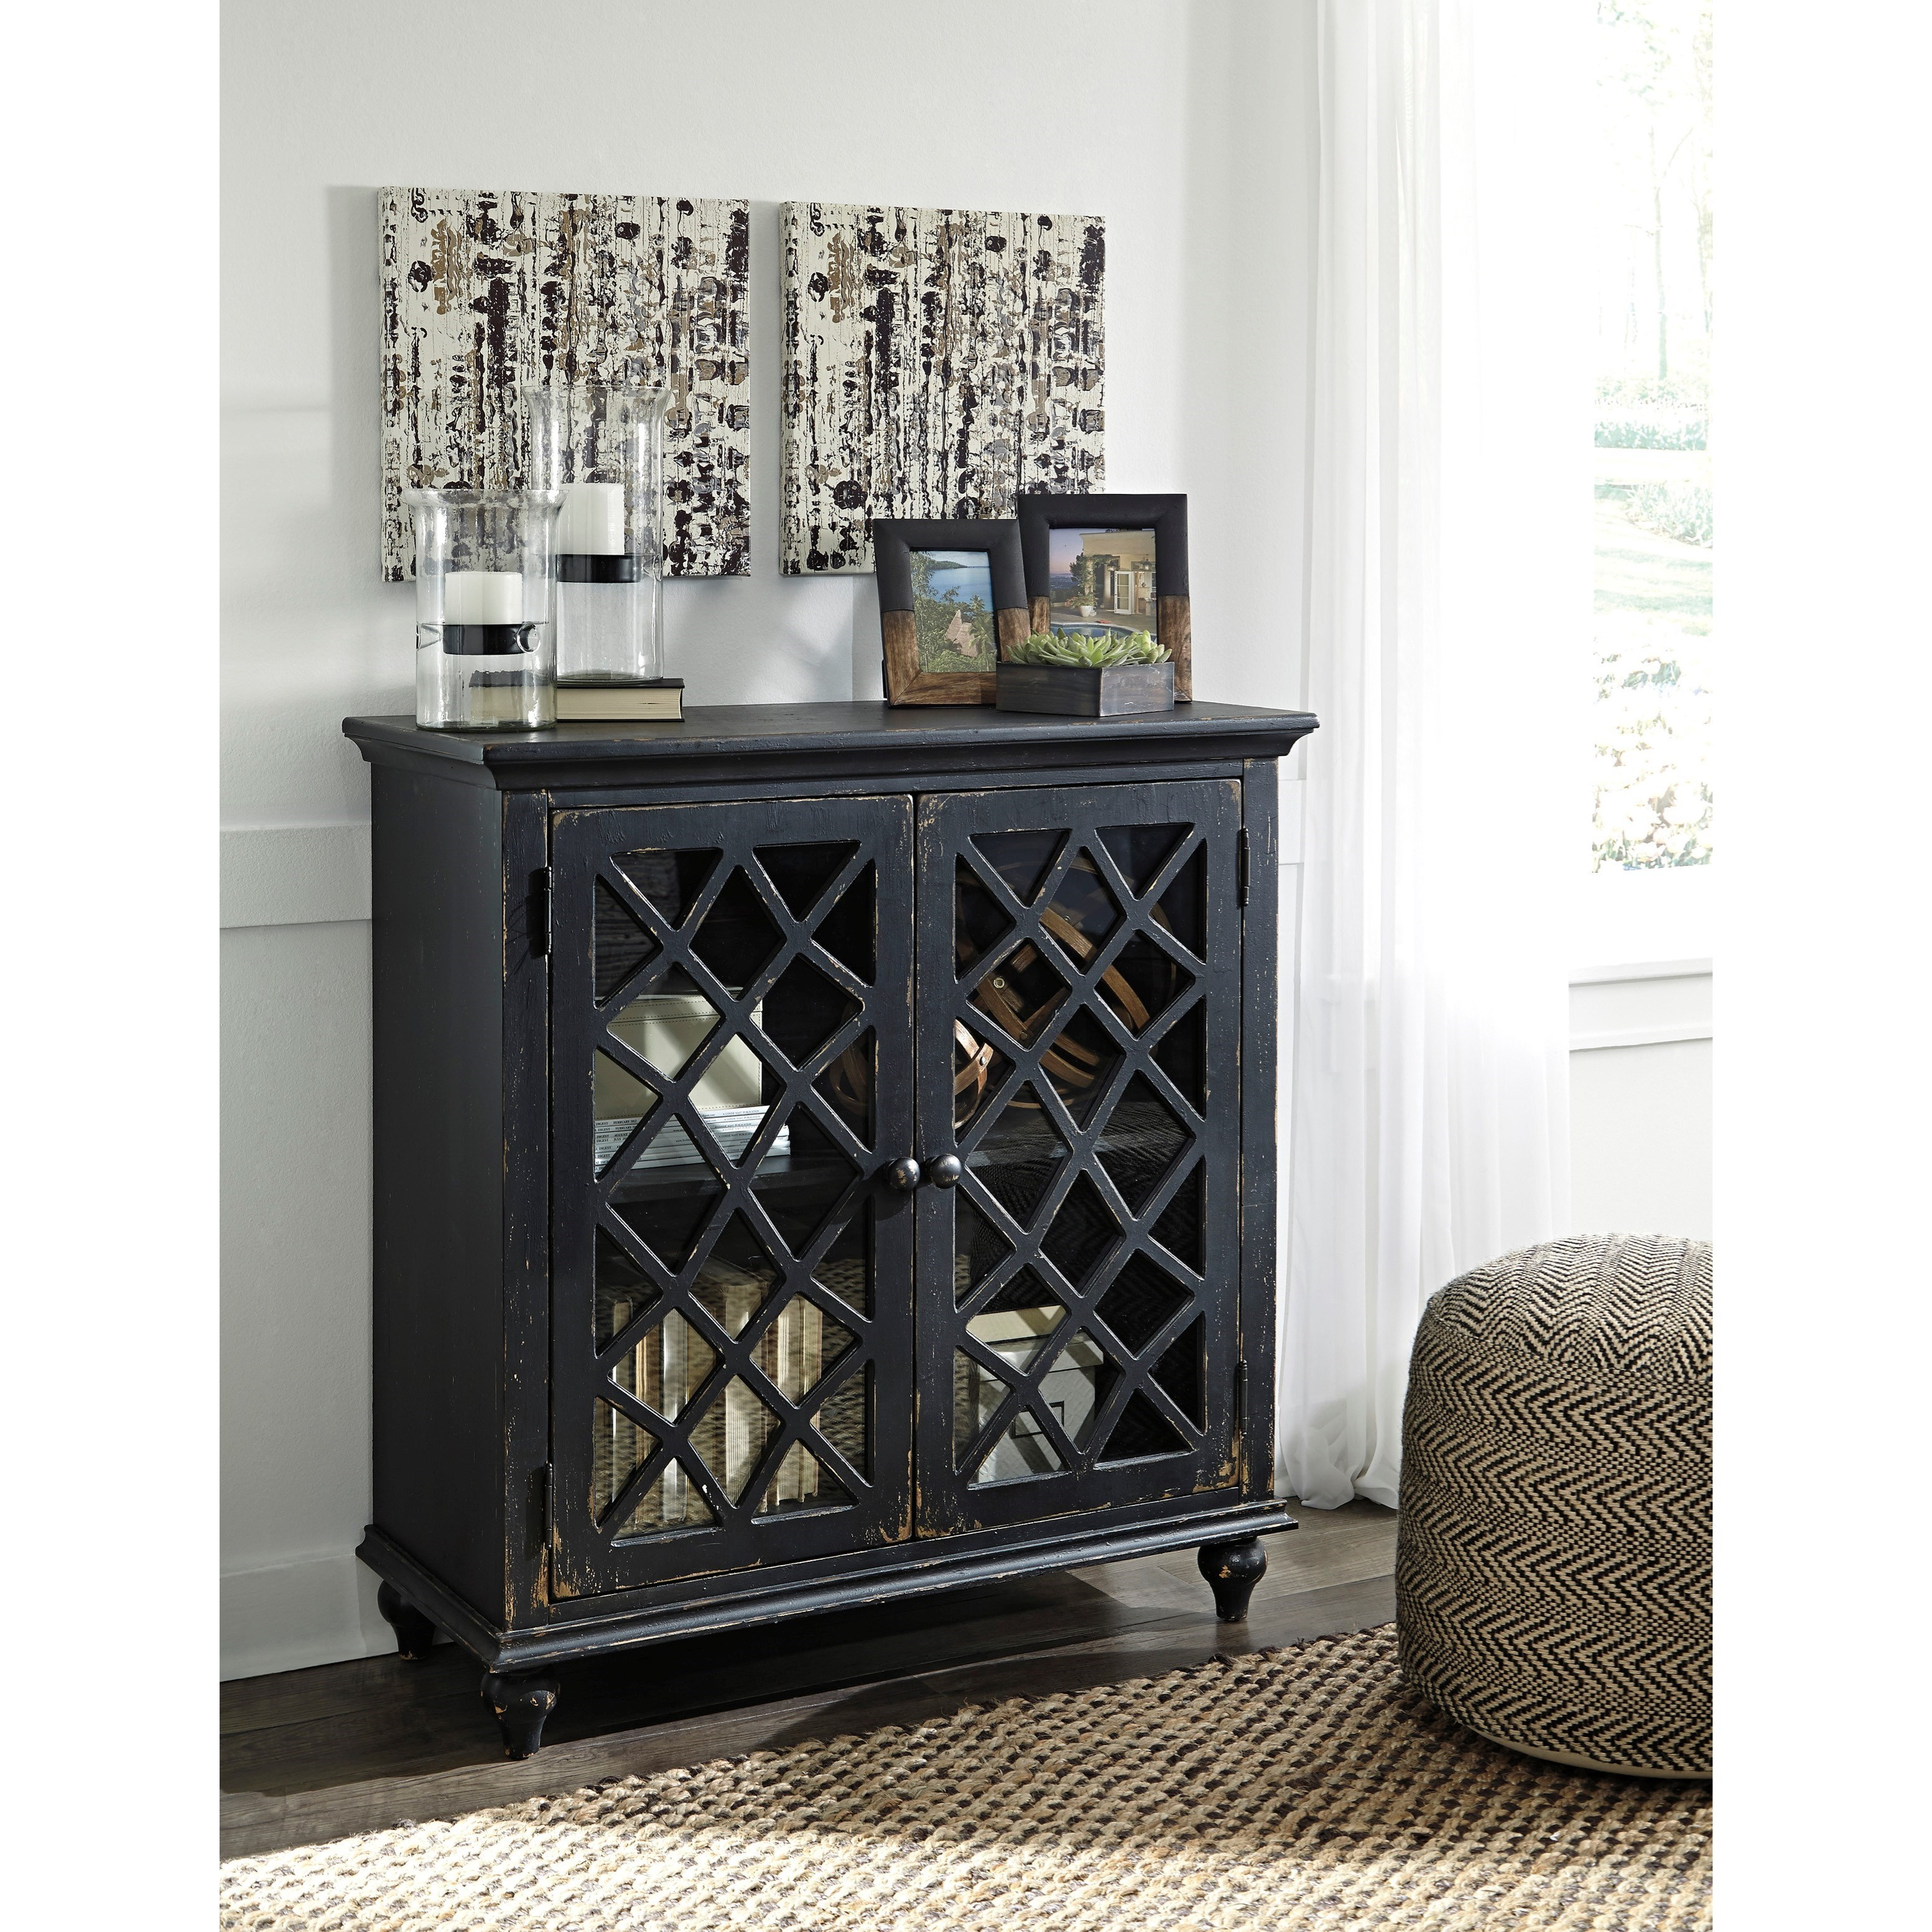 Accent cabinet with glass doors - Lattice Glass Door Accent Cabinet In Antique Black Finish